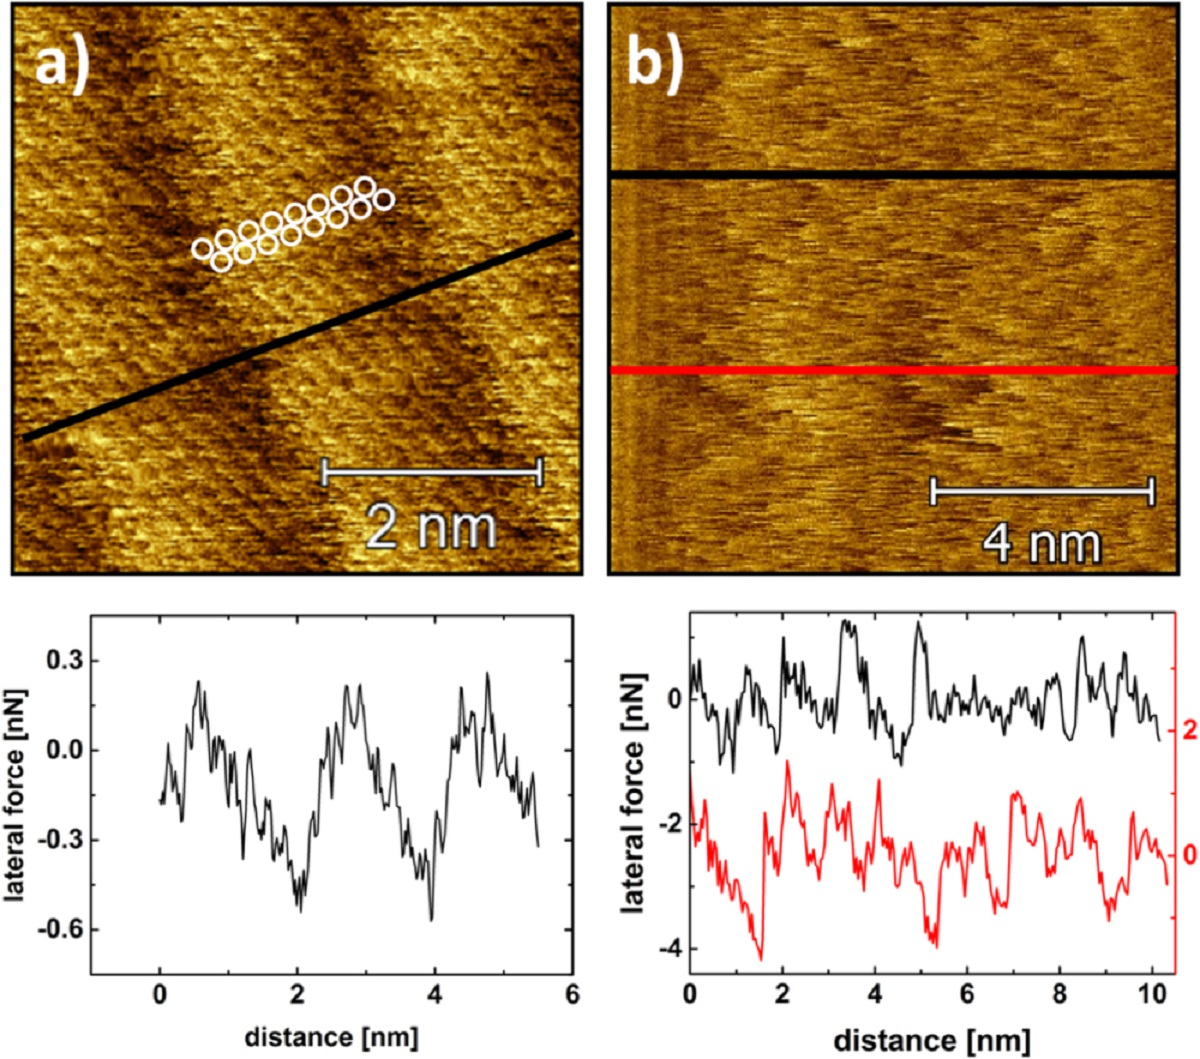 "Figure 3 from ""Single layer graphene induces load-bearing molecular layering at the hexadecane-steel interface"" by G Krämer et al.:  High-resolution lateral force maps recorded in hexadecane with a normal force of 3 nN. (a) On graphene, the adsorbed hexadecane molecules arrange in form of lamellae with a width of 2.1 nm. The cross-section was taken along the line indicated. The schematic depiction of the orientation of one hexadecane molecule is informed by the results in [21]. (b) On the steel substrate, an irregular stick-slip pattern with a characteristic slip length of about 1 nm is observed. The two cross-sections are taken the along the lines indicated in the respective color."